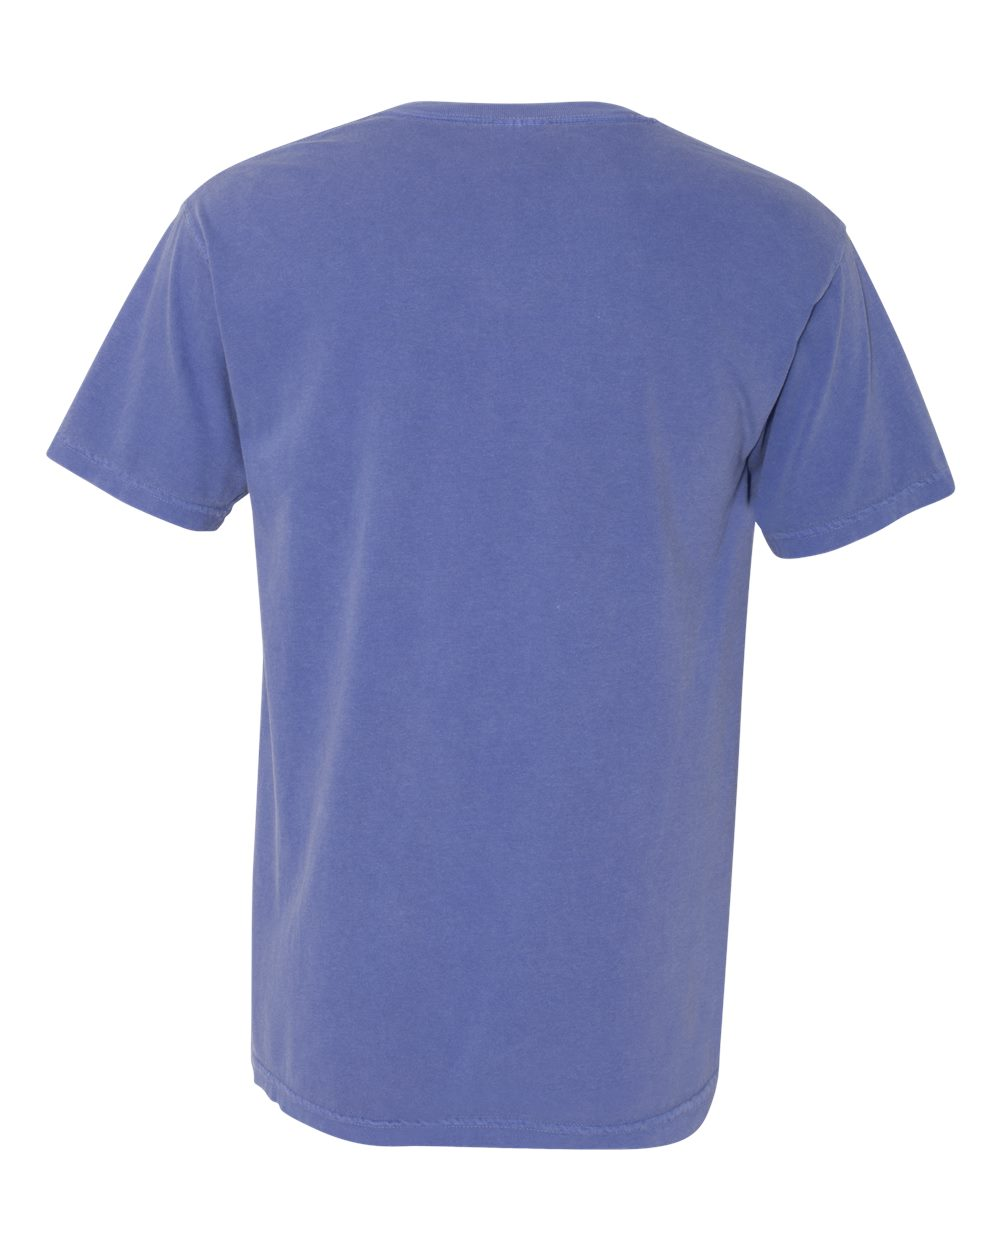 Comfort-Colors-Men-039-s-6-1-oz-Garment-Dyed-Pocket-T-Shirt-6030CC-S-3XL thumbnail 70